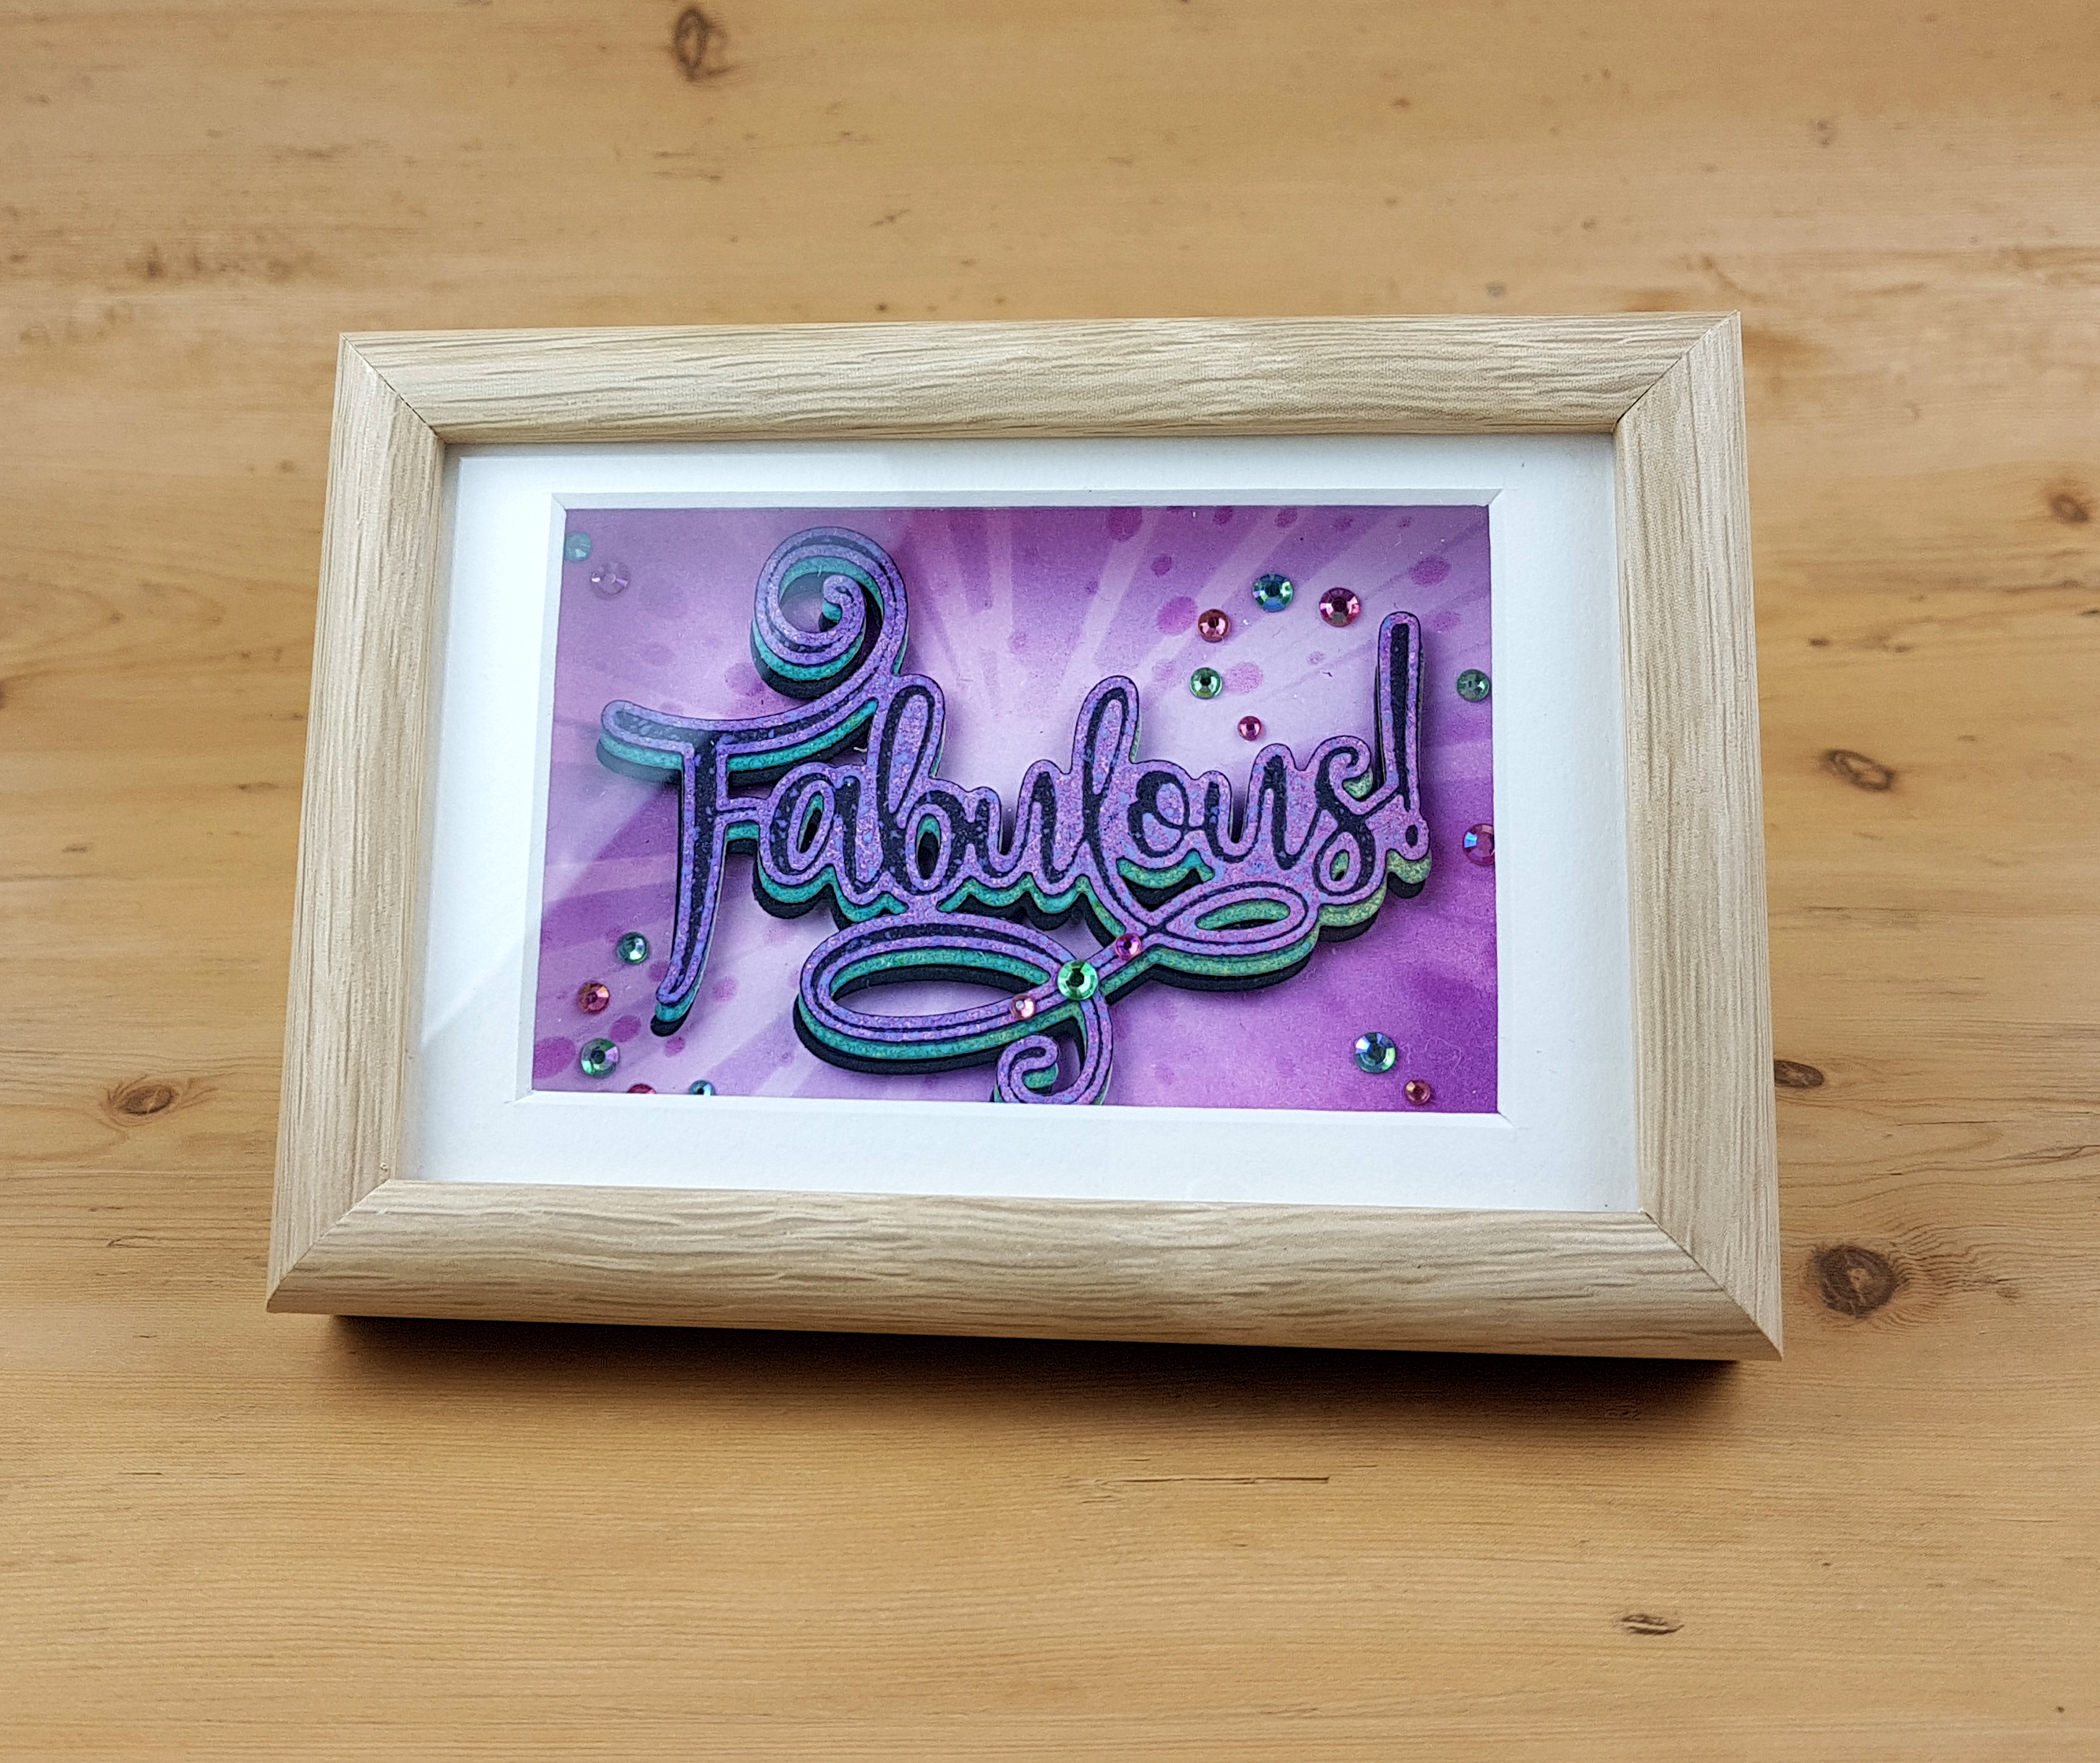 Image showing a framed die cut word. Design by John Bloodworth Gentleman Crafter featuring the Fabulous cut foil and emboss die from Couture Creations